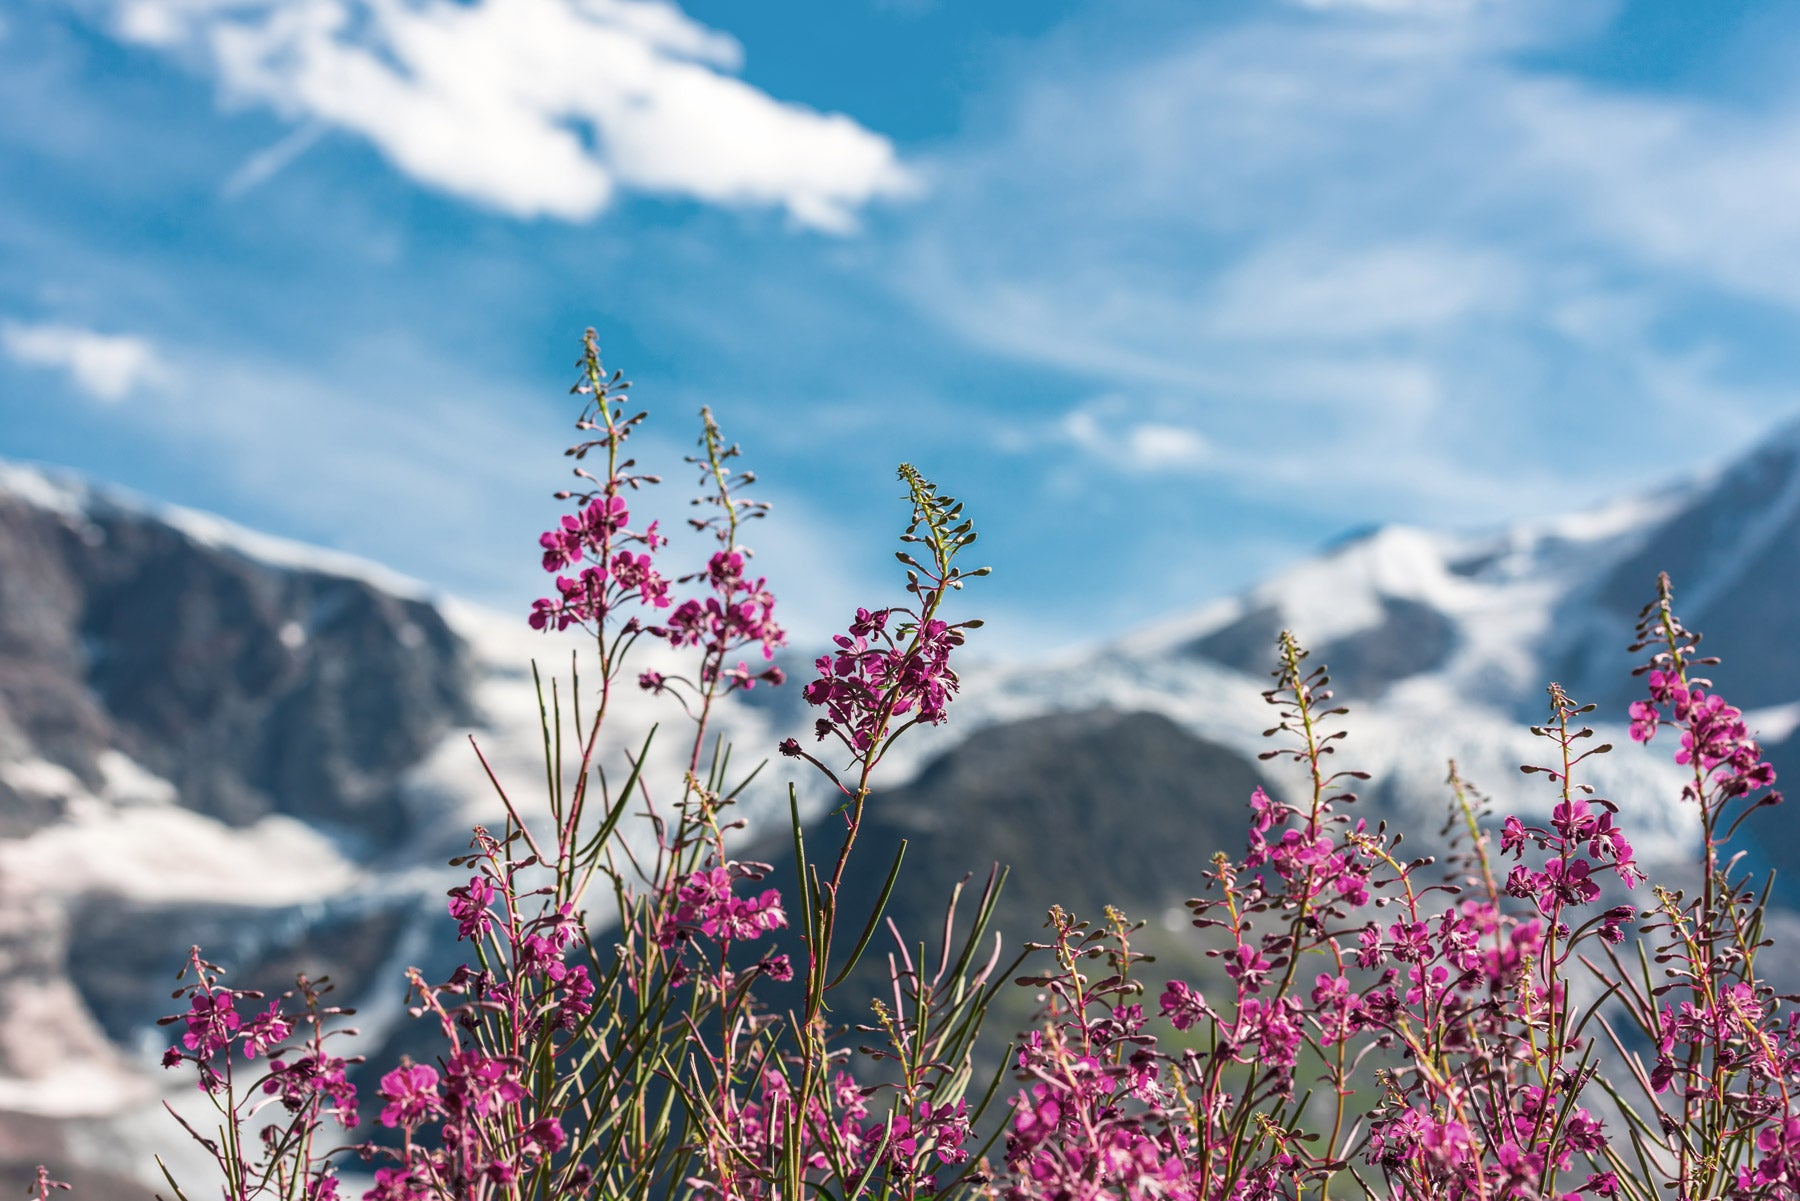 A mountain range behind some flowers.